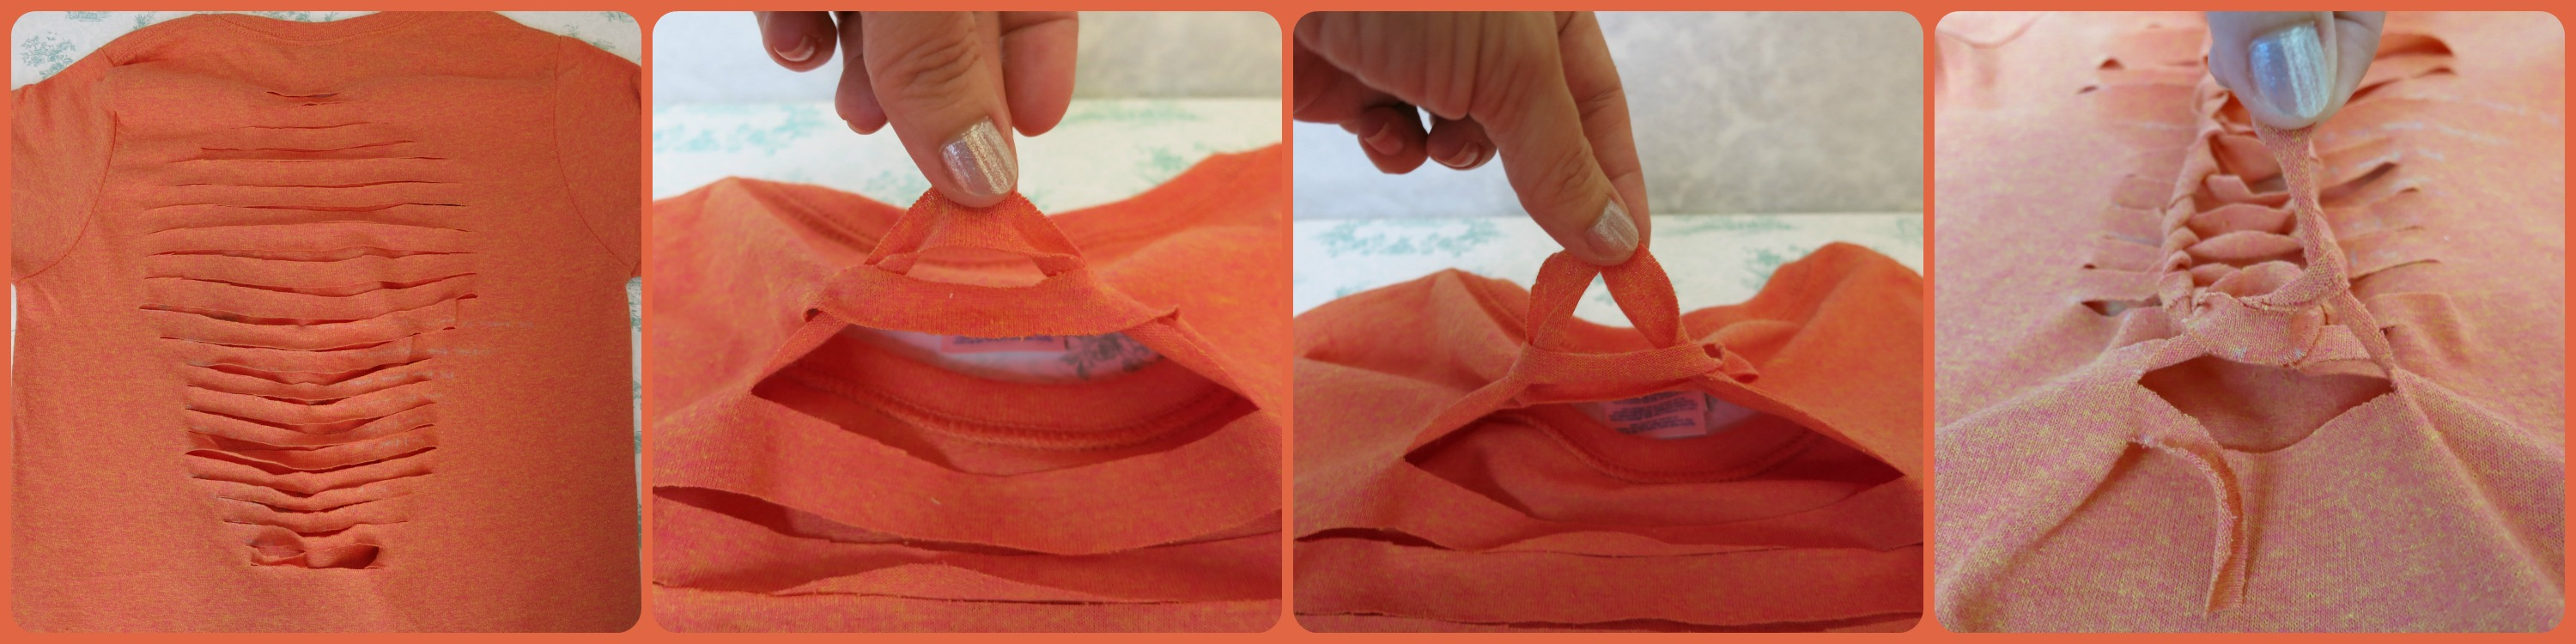 T Shirt Cutting Tutorial